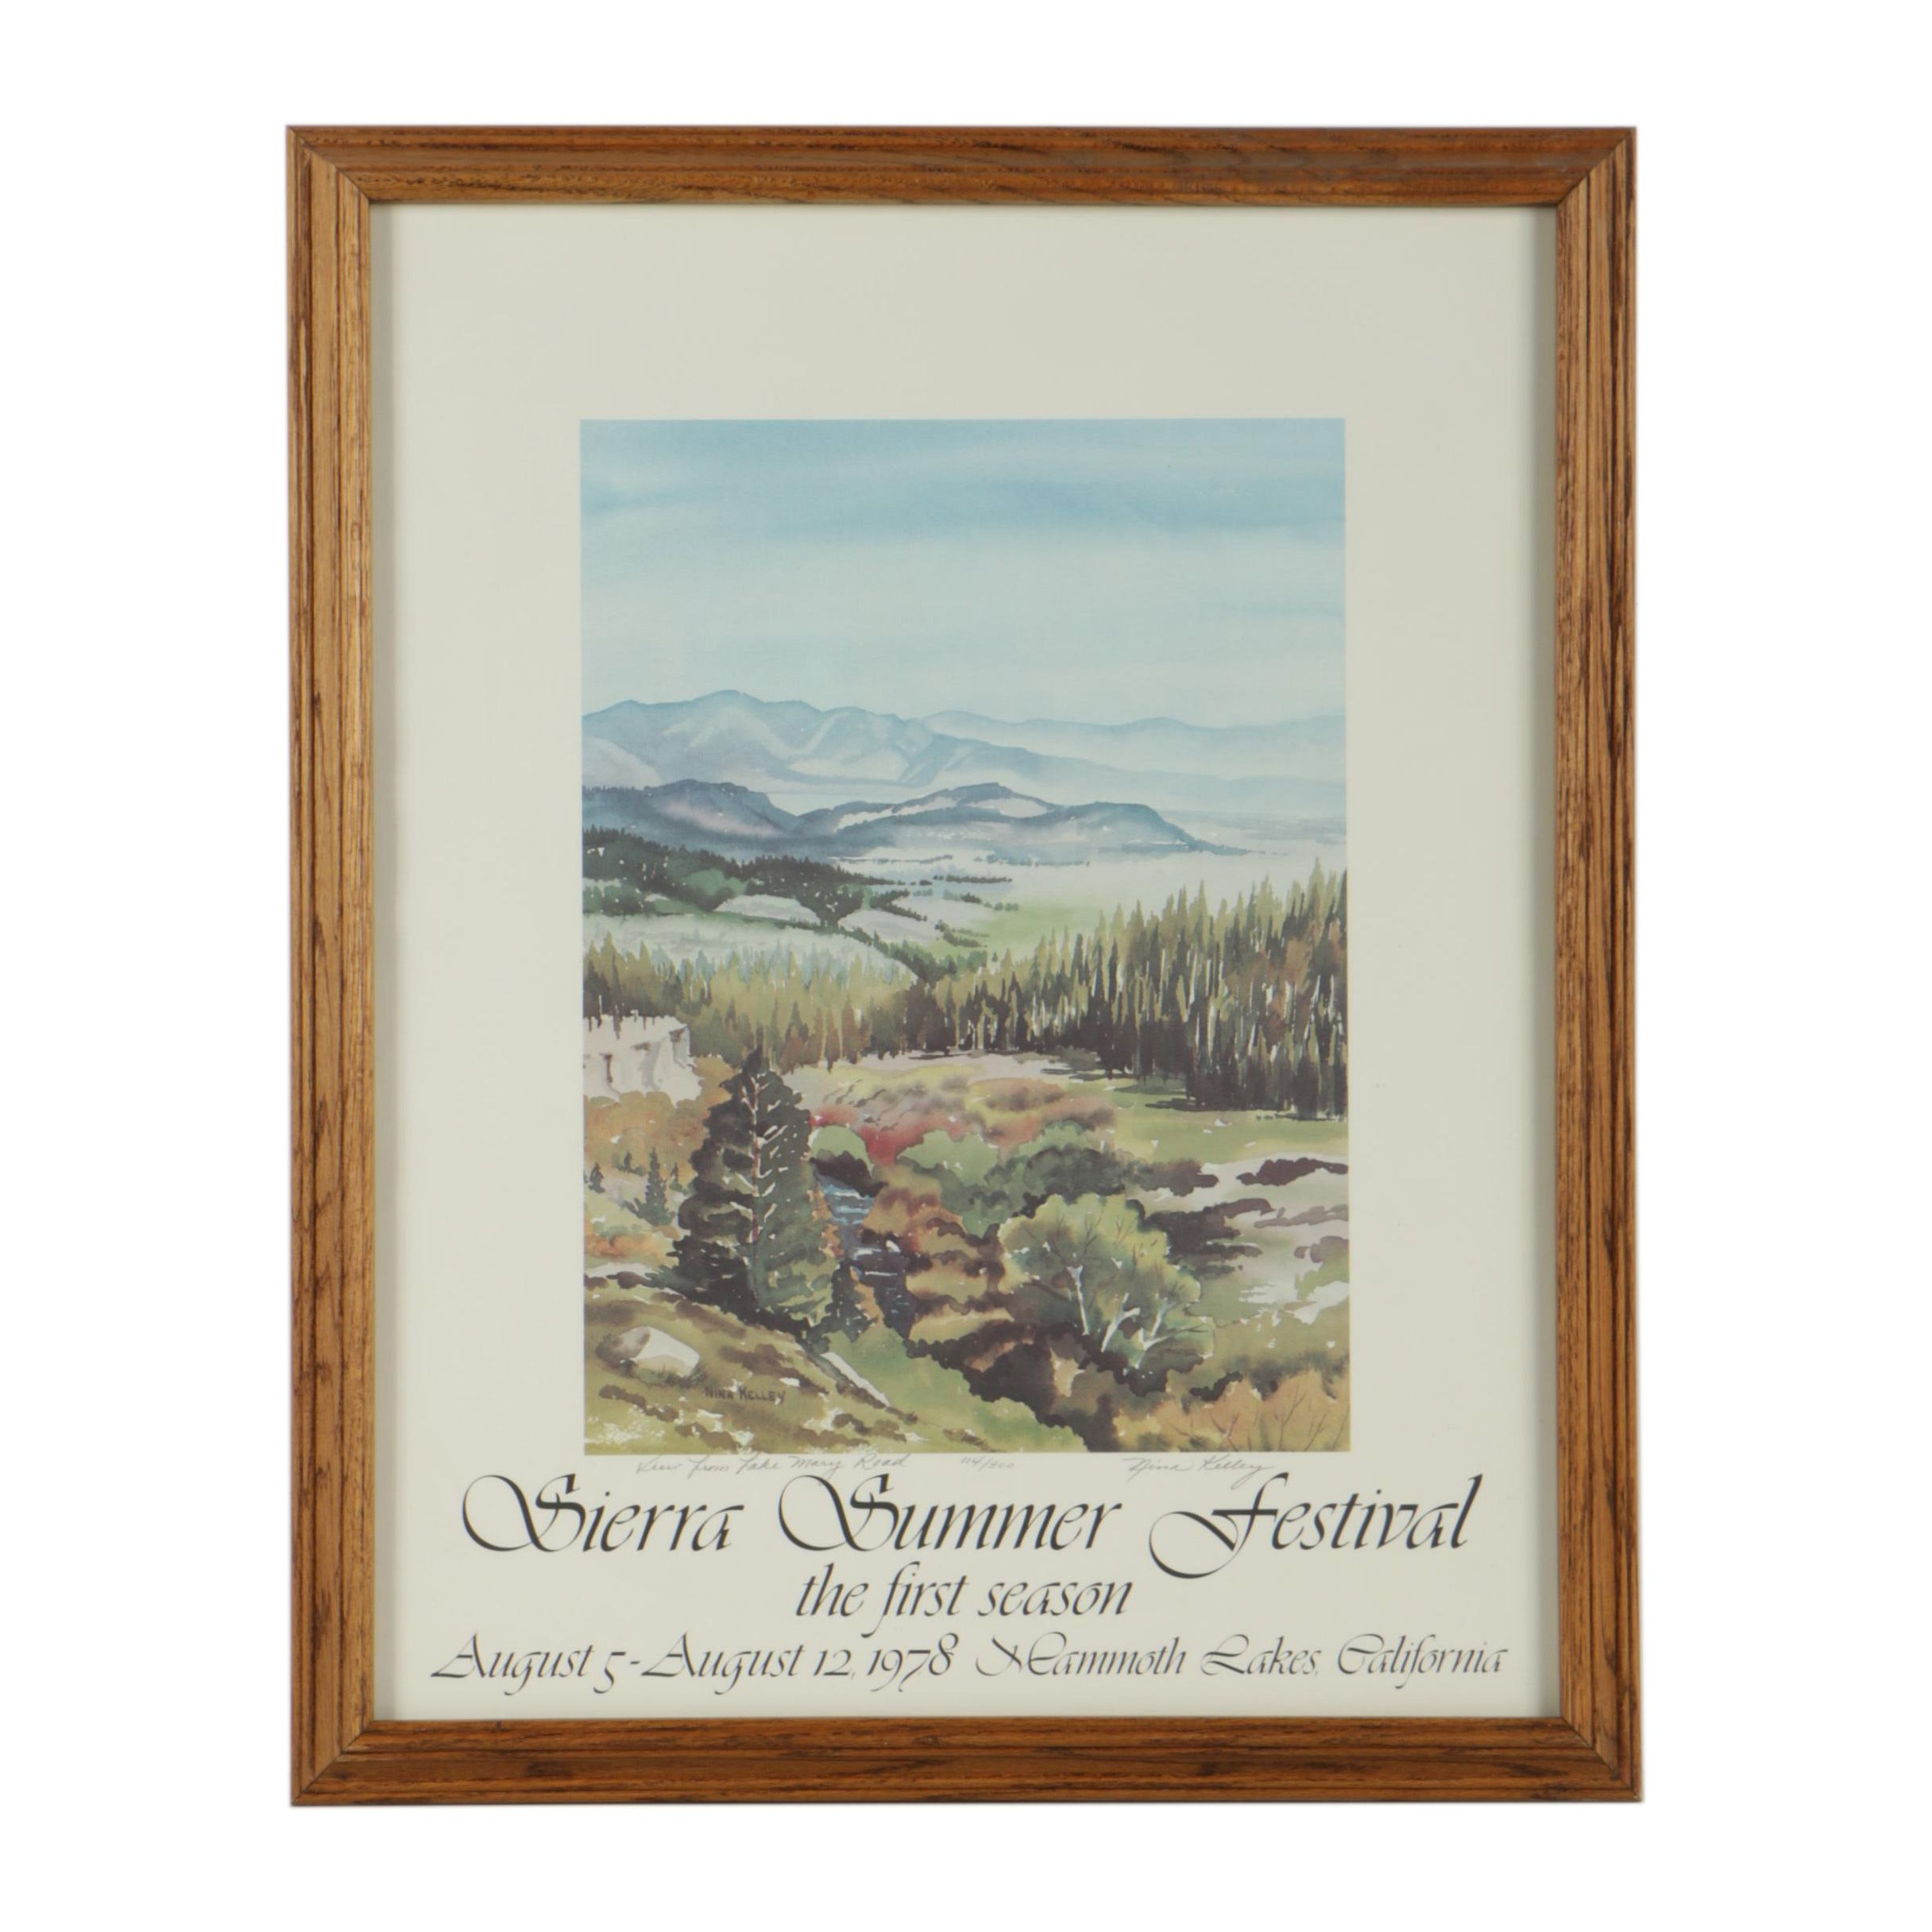 Nina Kelley Limited Edition Offset Lithograph Poster for Sierra Summer Festival